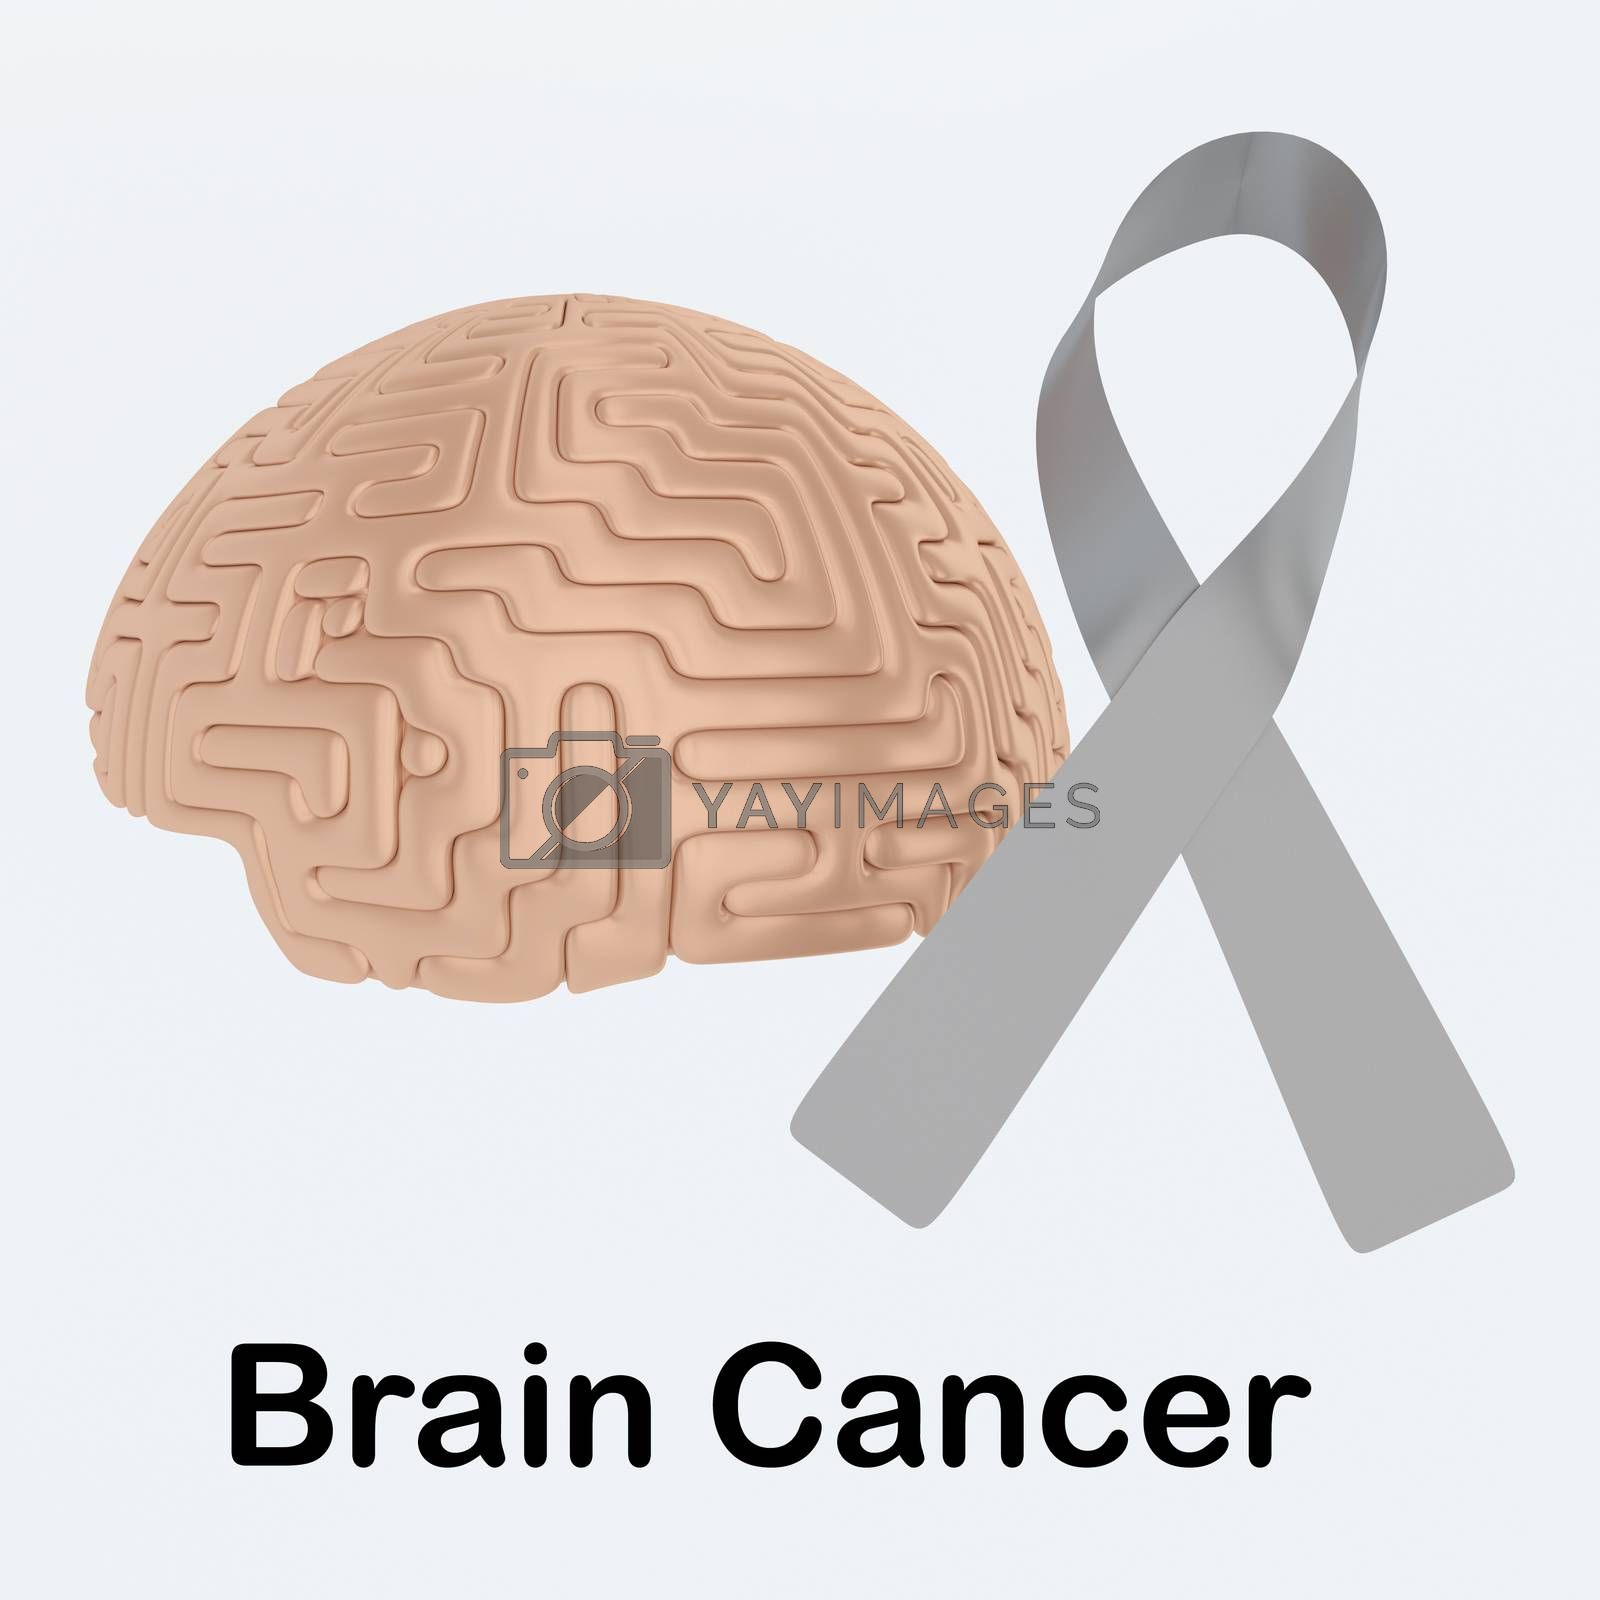 3D illustration BRAIN CANCER script below an awareness ribbon of lung cancer and human brain, isolated over pale blue background.